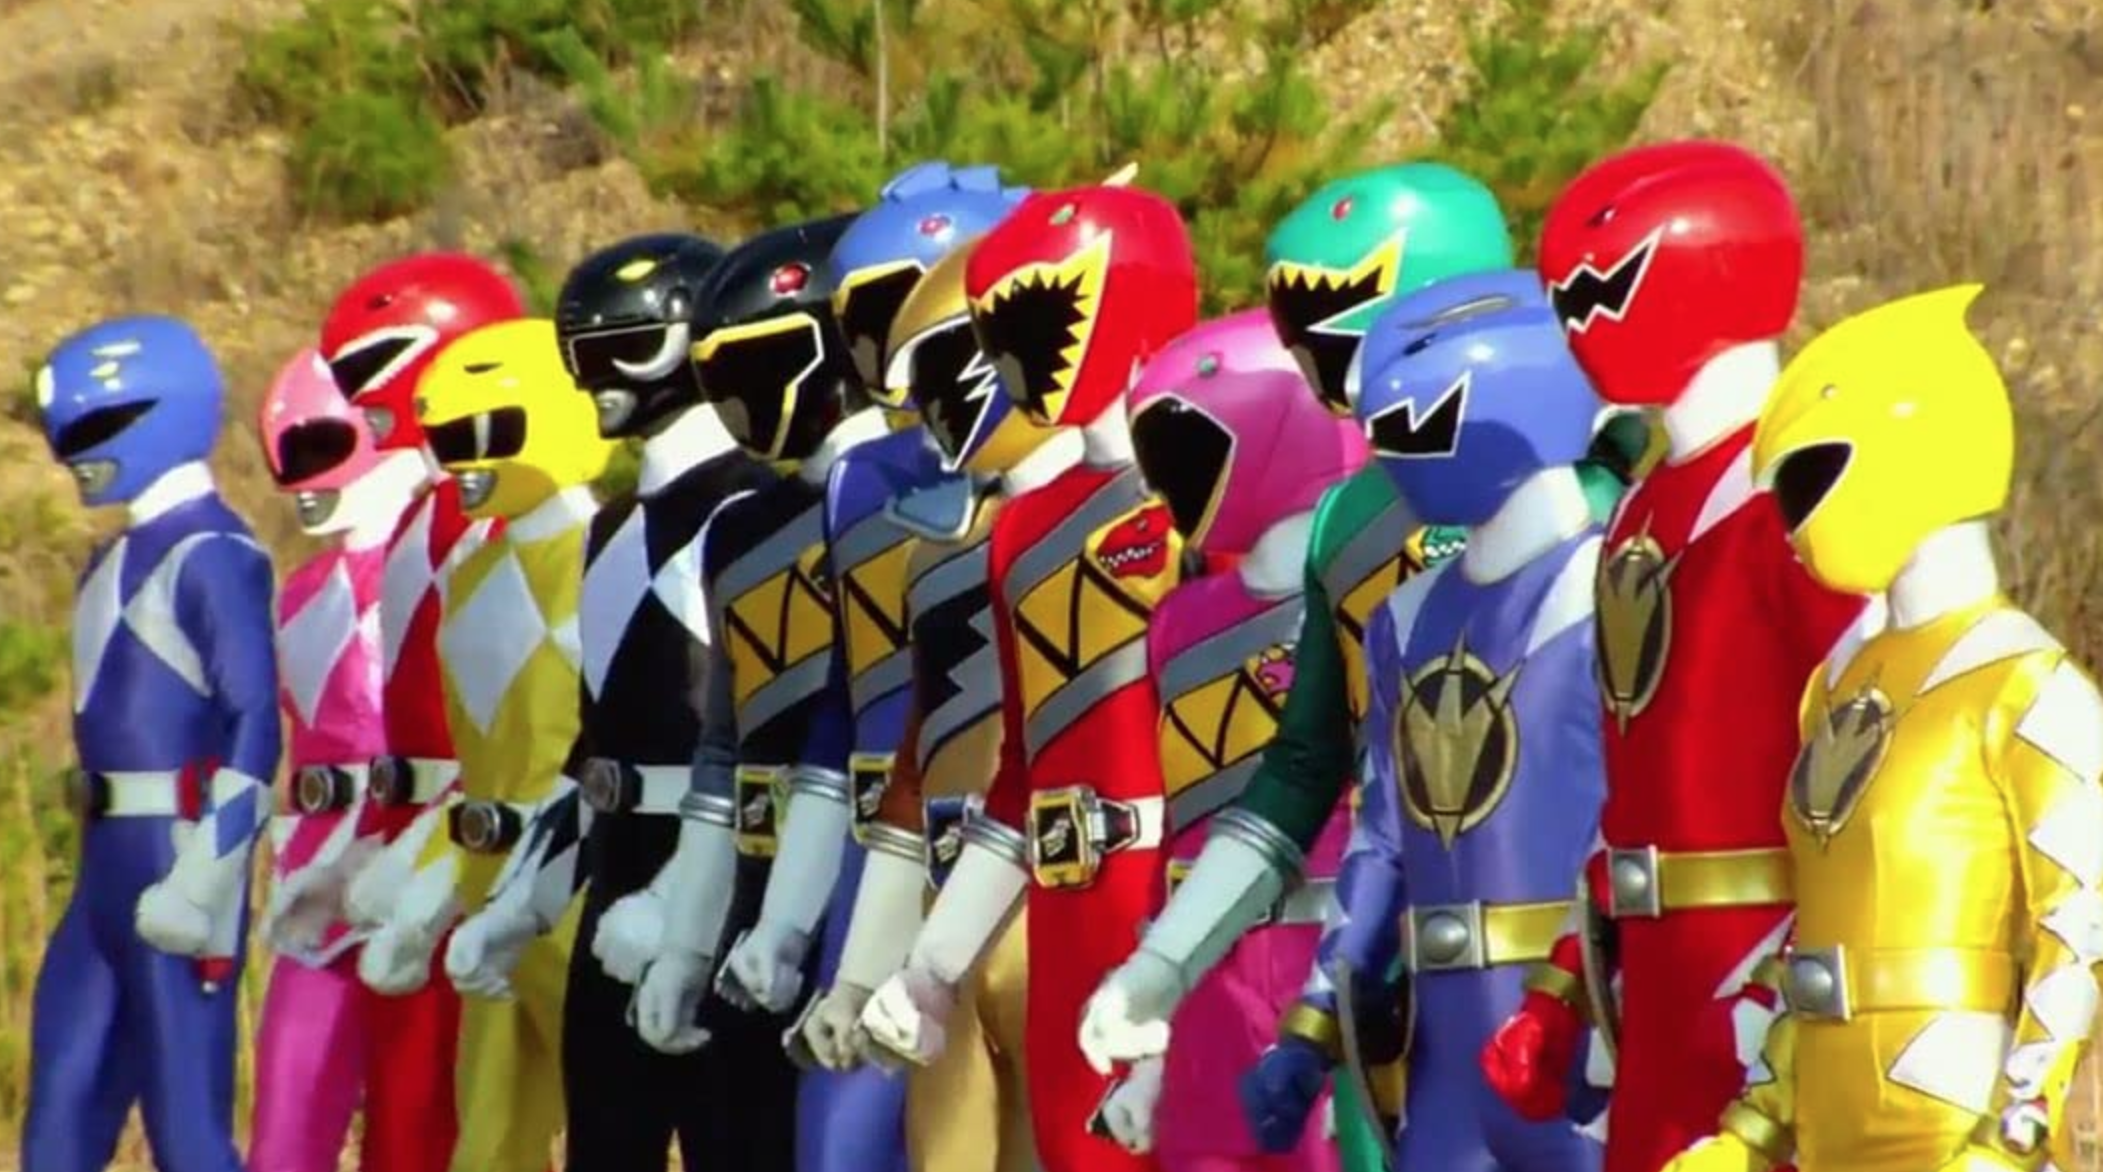 Passionate About 'Power Rangers'? Morph Your Career by Applying To These Gigs